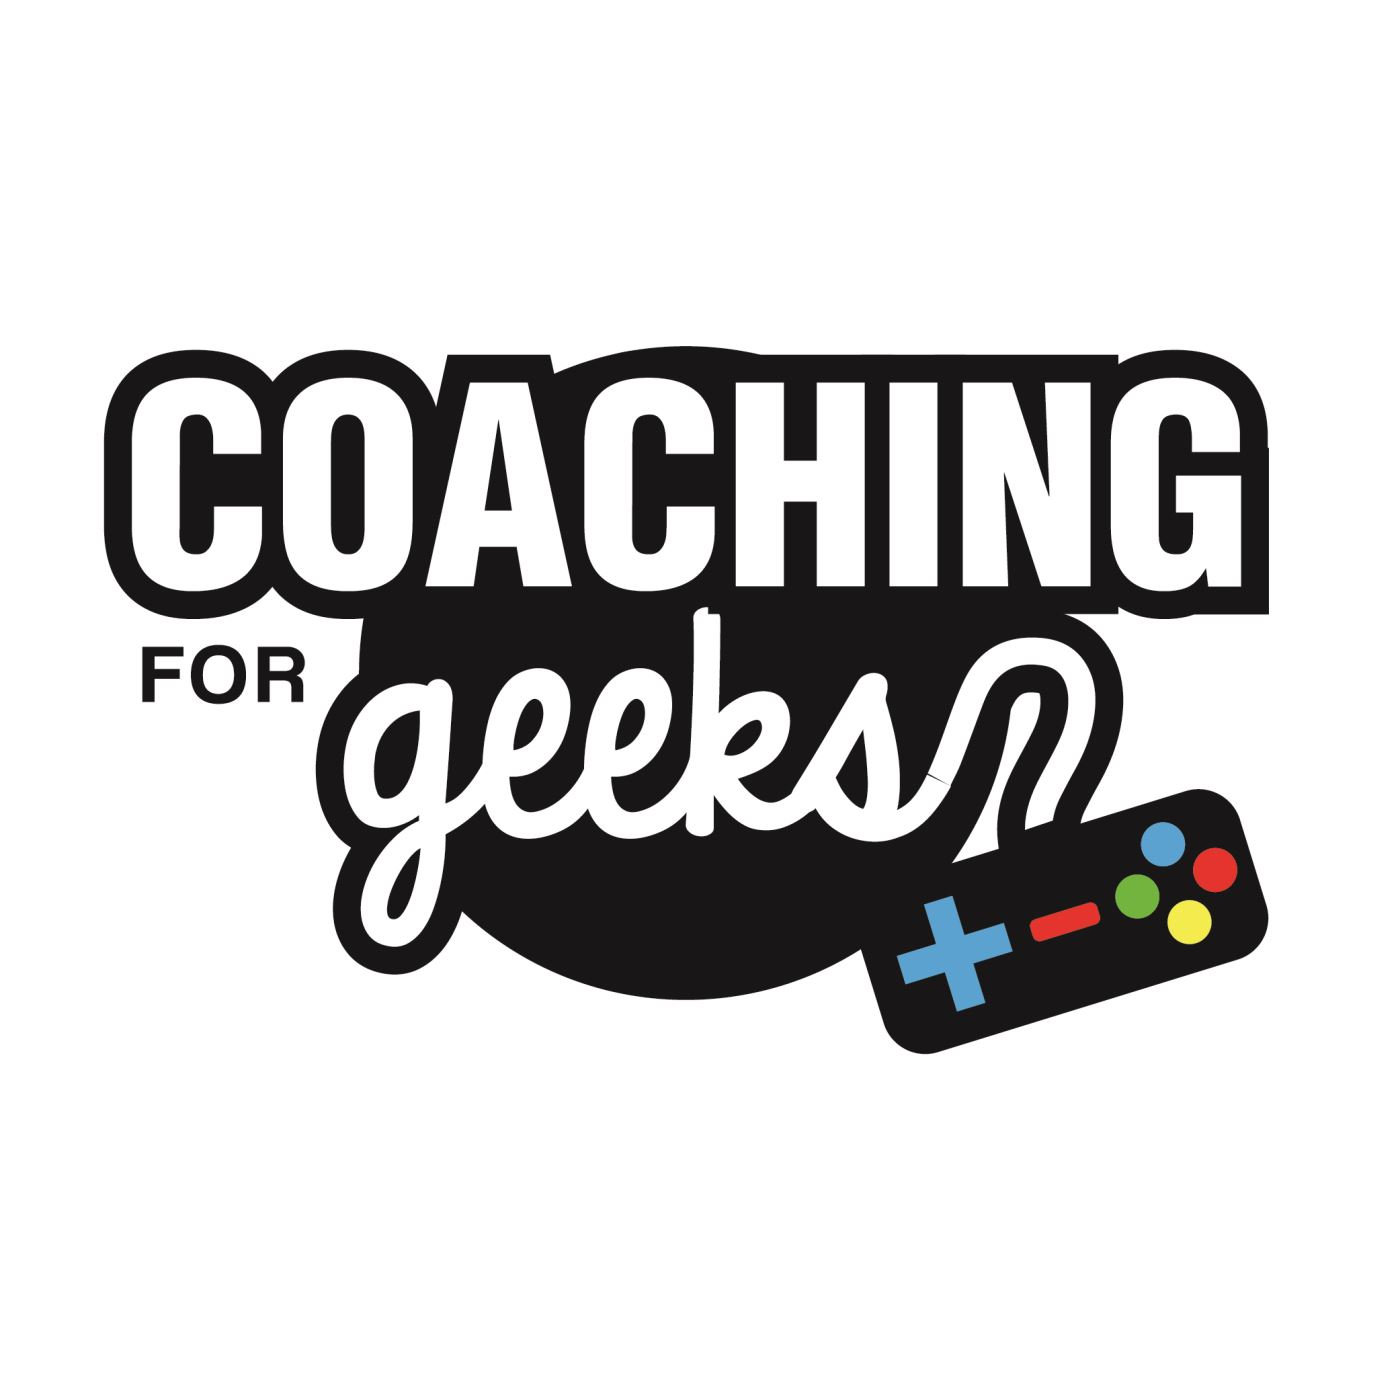 59 - +7 Intelligence - How games impact society with Ches Hall